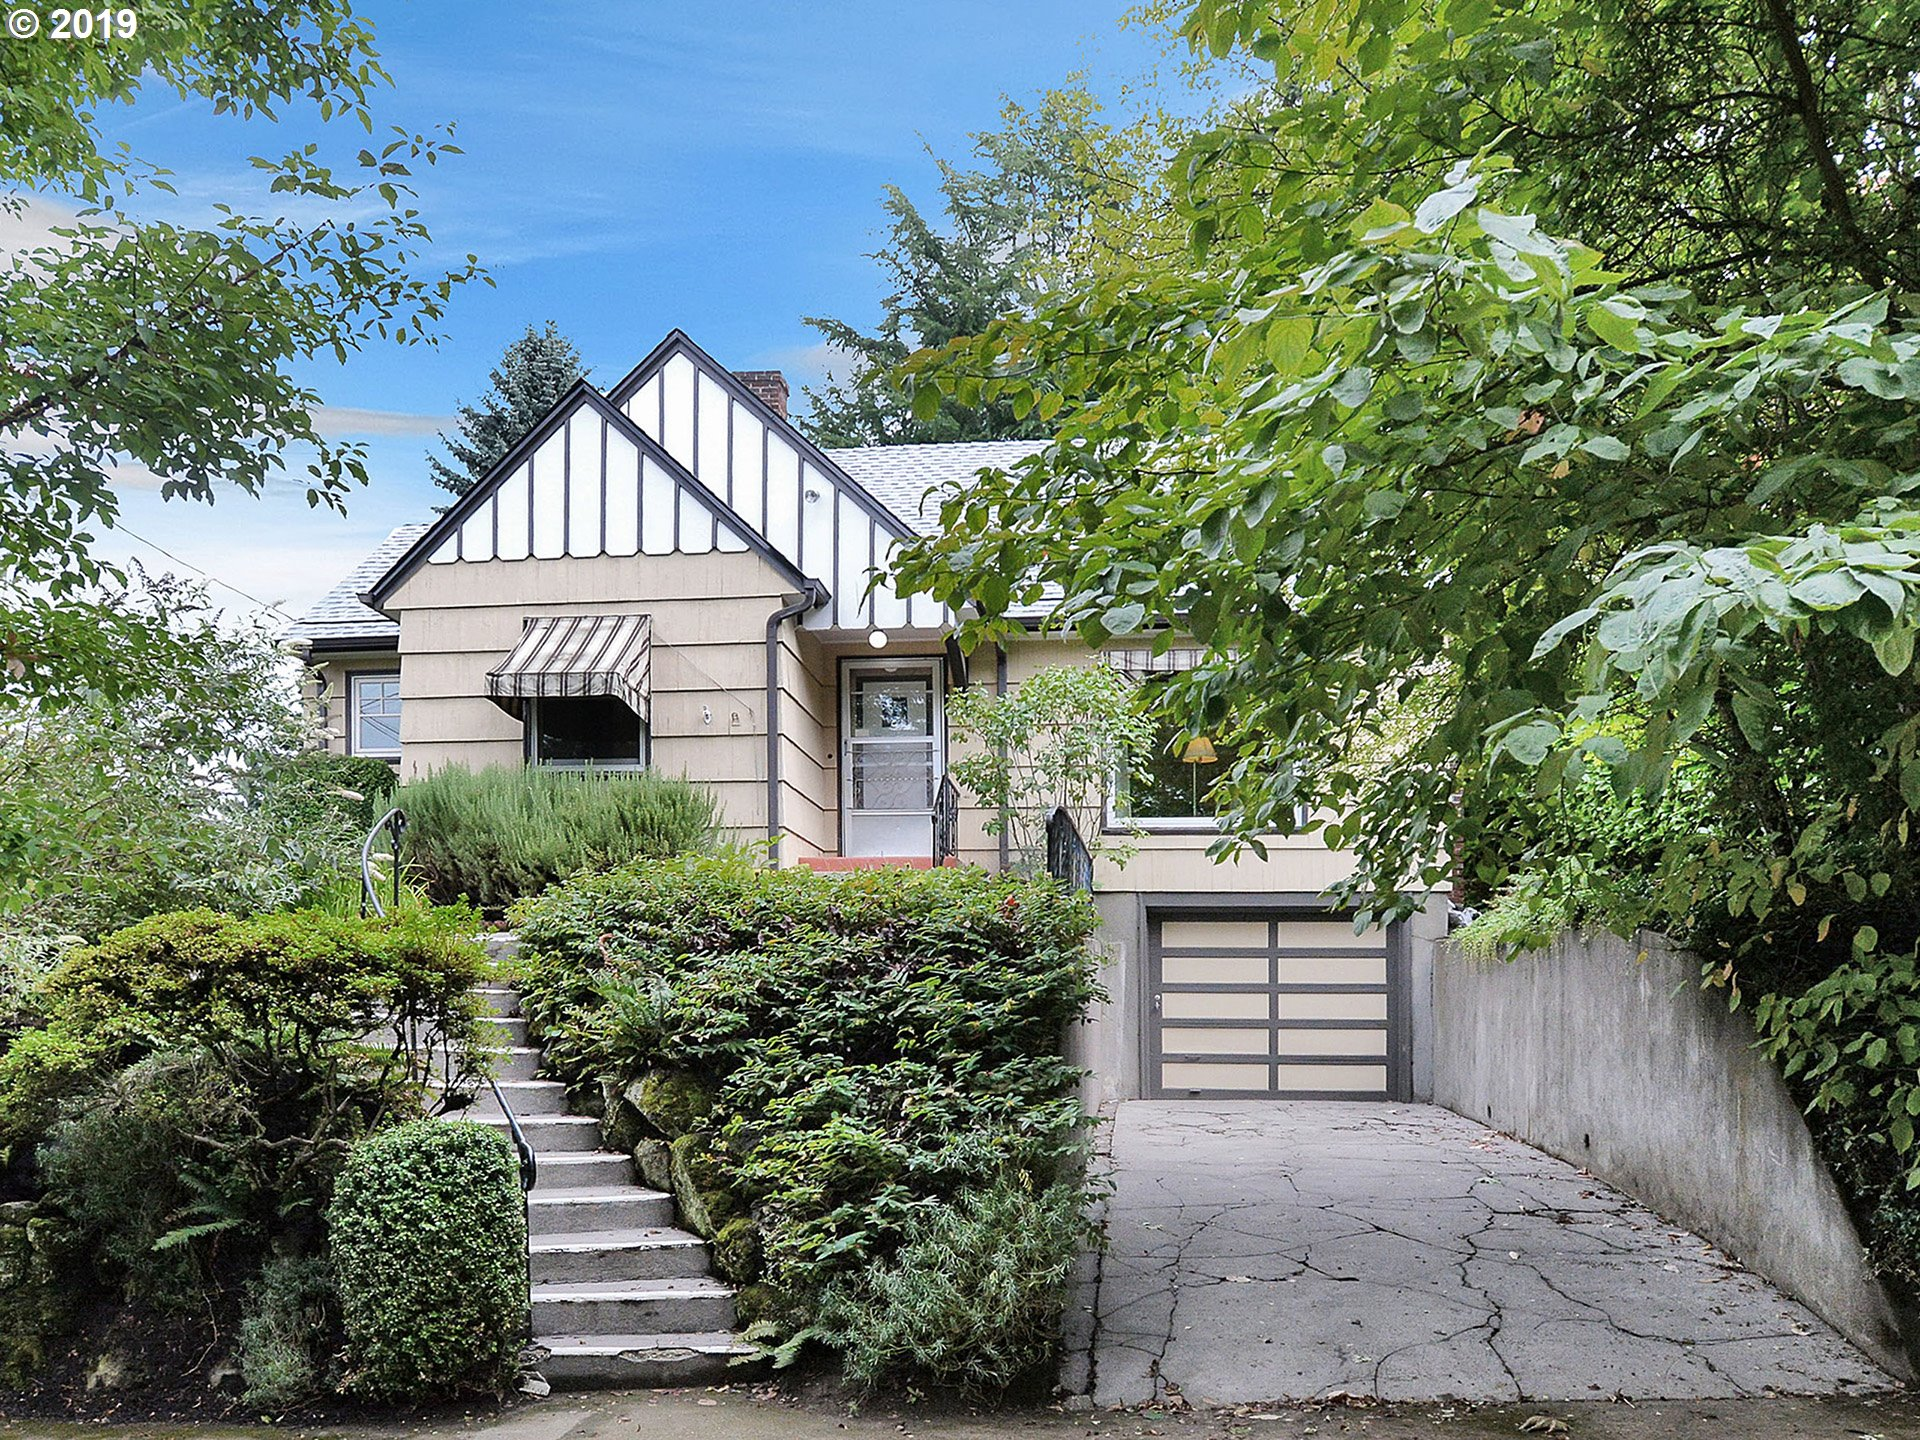 Charming English in Center/Mt.Tabor Heights with modern updates. Hardwoods, built-ins, high ceilings. Close to shopping, cafes, Mt. Tabor Park, & public transit. New tear-off roof, geothermal heating, many new windows,gorgeous hardwoods in living & dining, unfinished high-ceil basement for future potential, extra deep garage, private fenced yard.  Fantastic neighborhood! [Home Energy Score = 5. HES Report at https://rpt.greenbuildingregistry.com/hes/OR10048735]